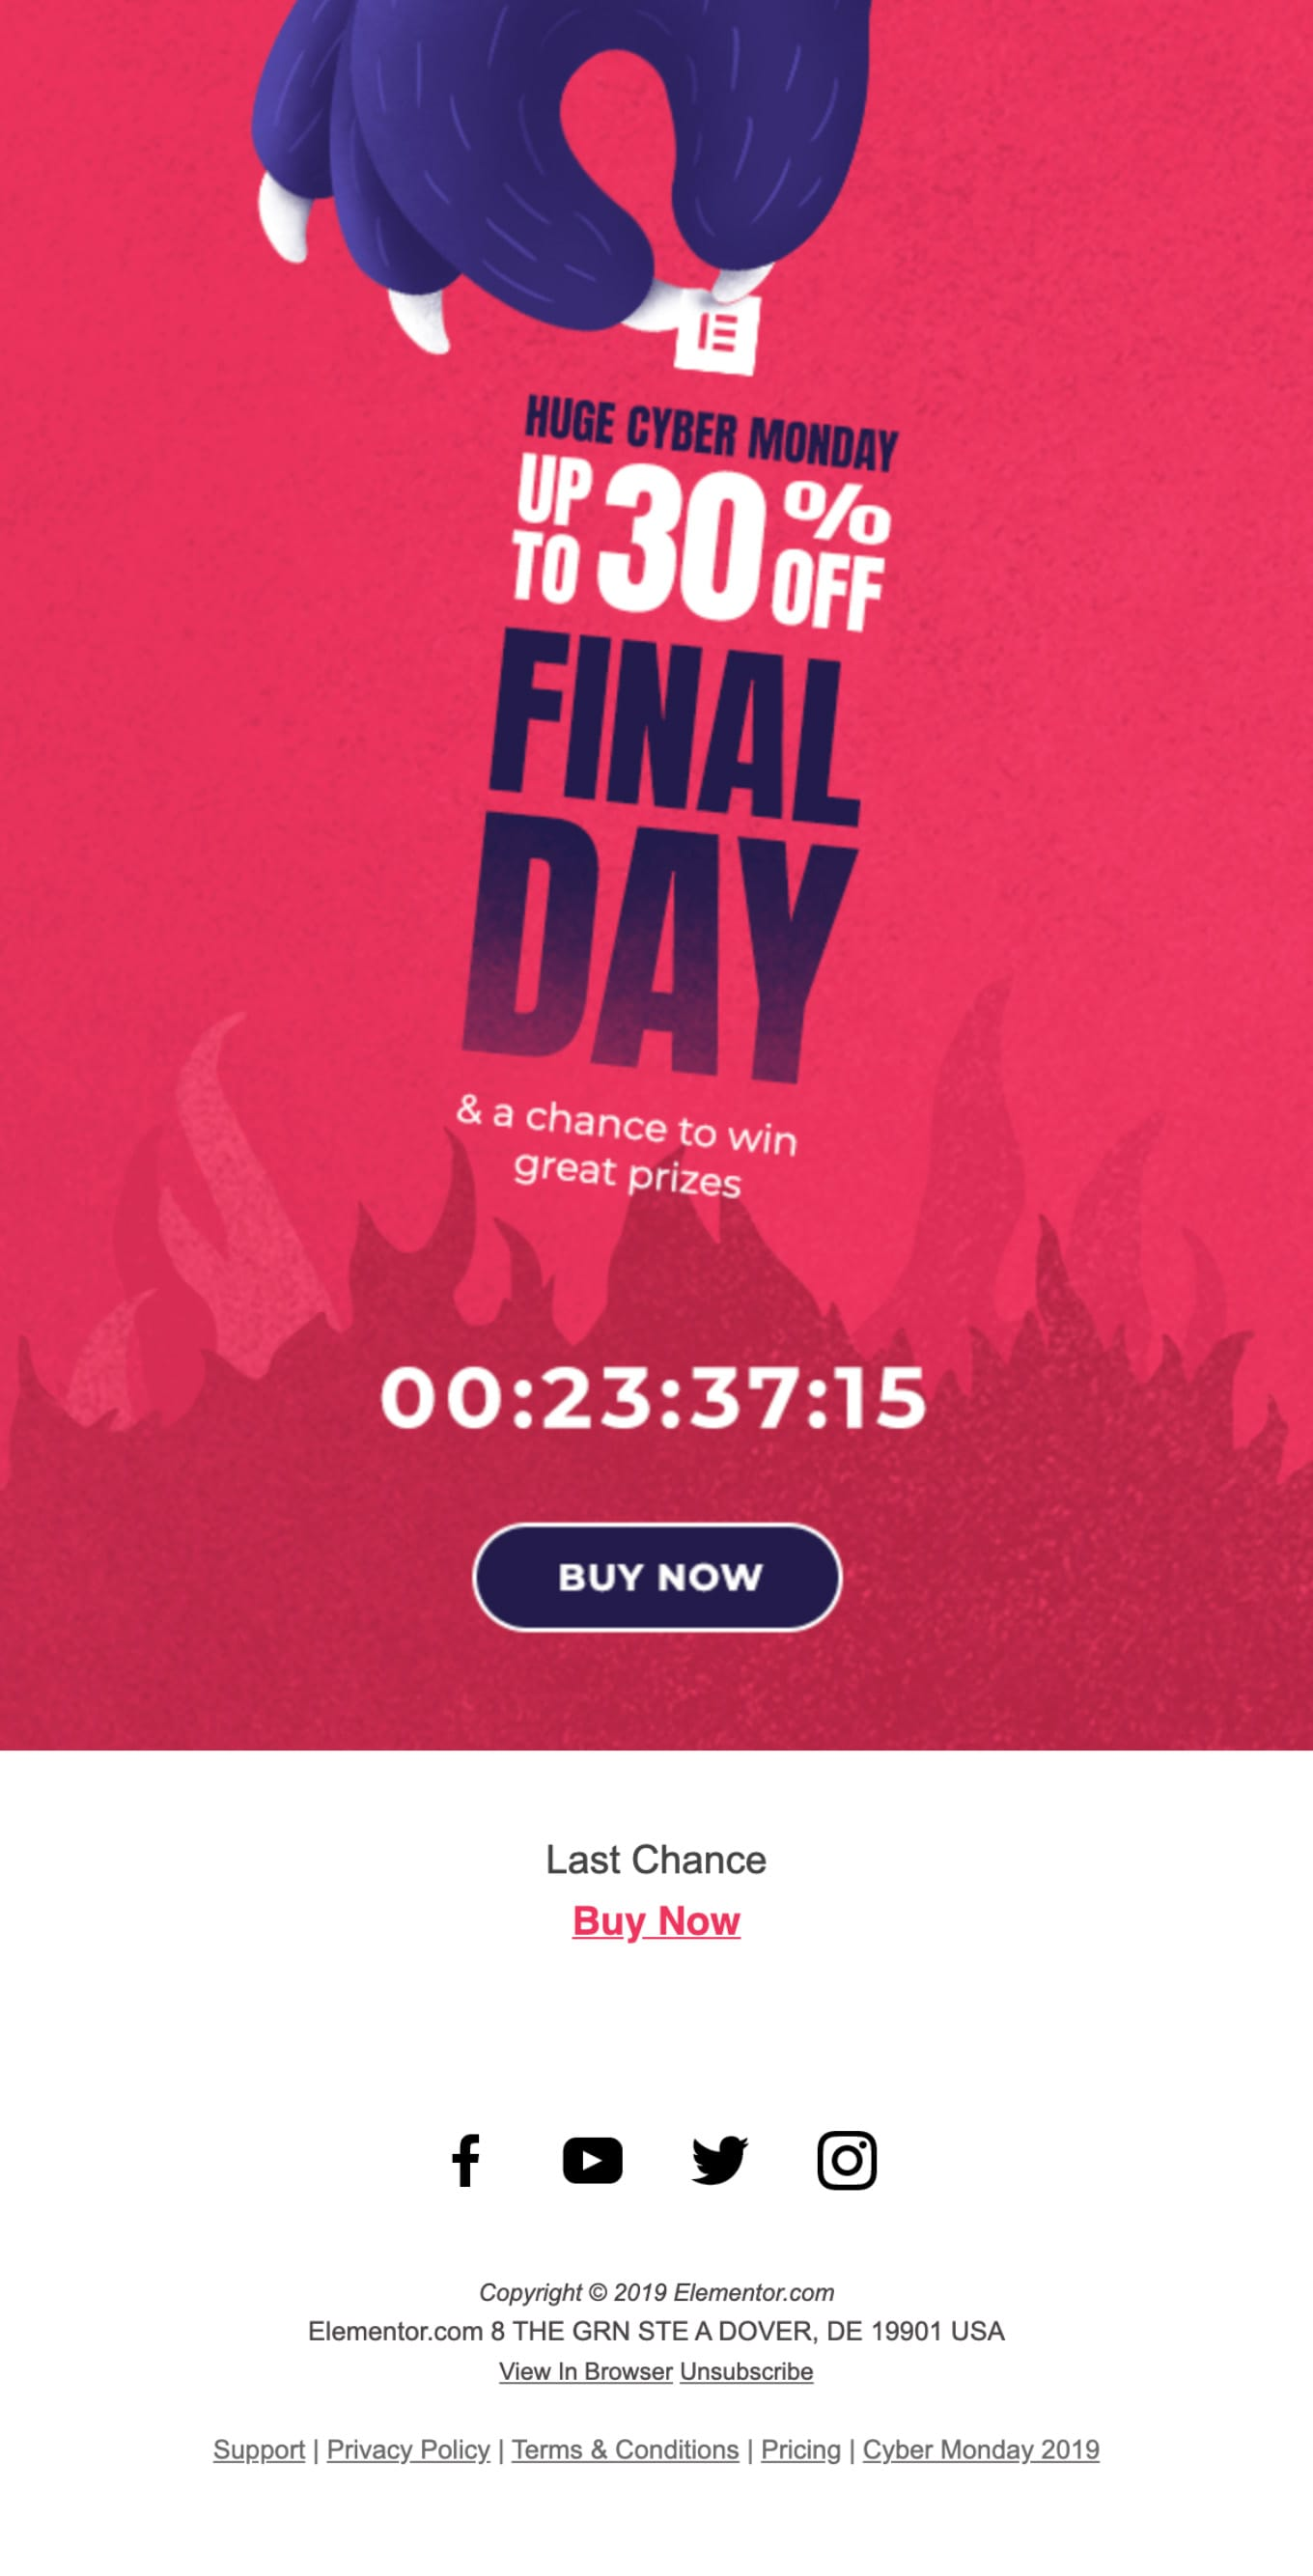 LAST CHANCE – Sale Ends Today. Email Screenshot